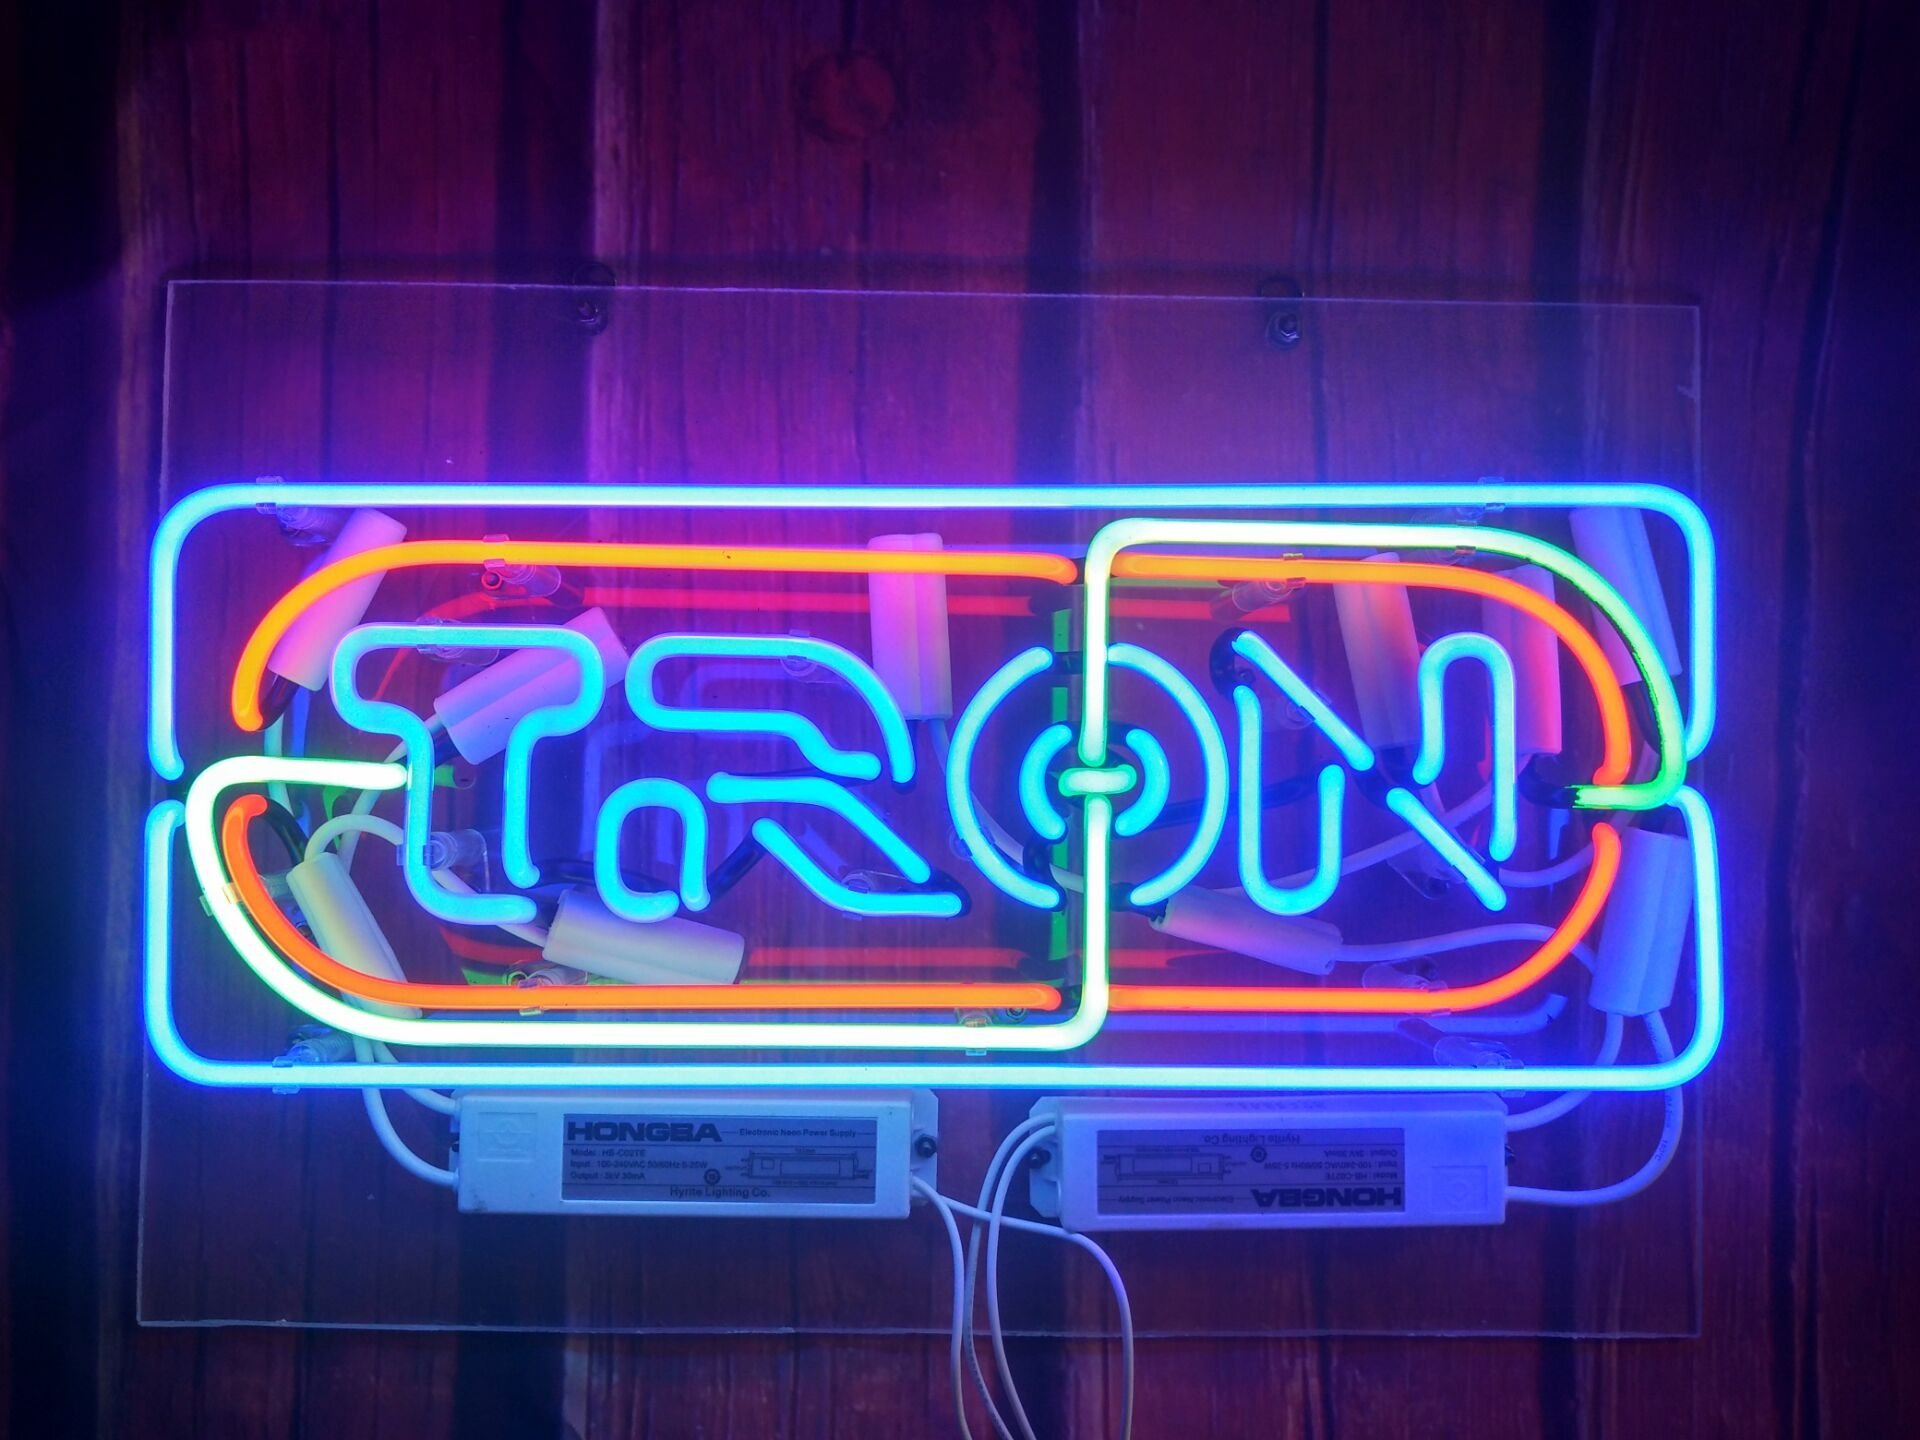 Mirsne Custom Designed 17'' by 14'' with Clear Backing Neon signs, glass tube neon open sign, custom made neon beer sign, unique neon sign art, supplied for a wide range of personal uses.